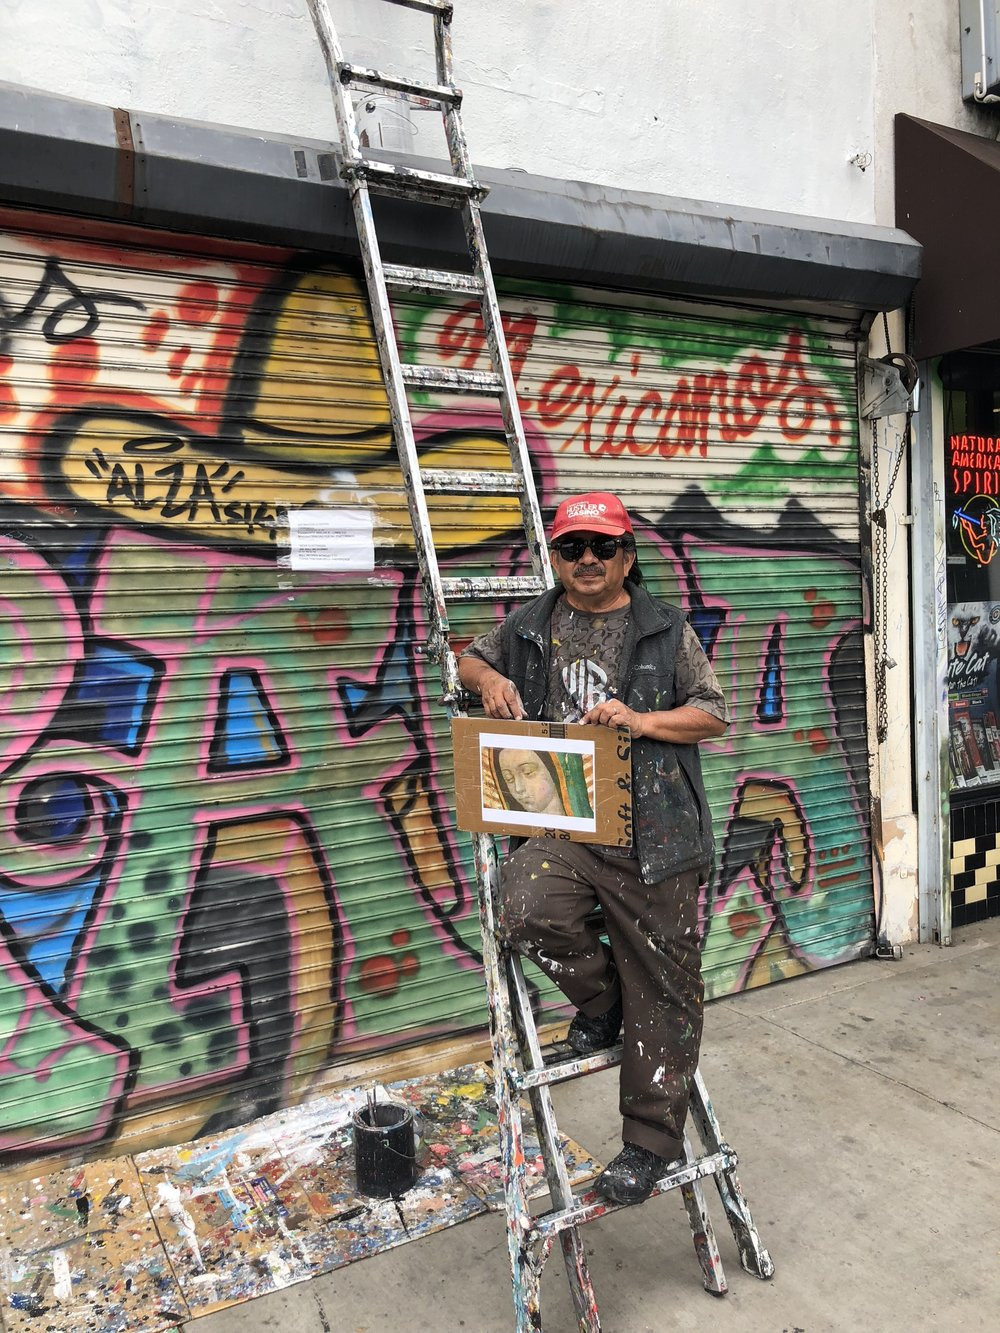 meet the muralist who fled el salvador to paint walls in los angeles